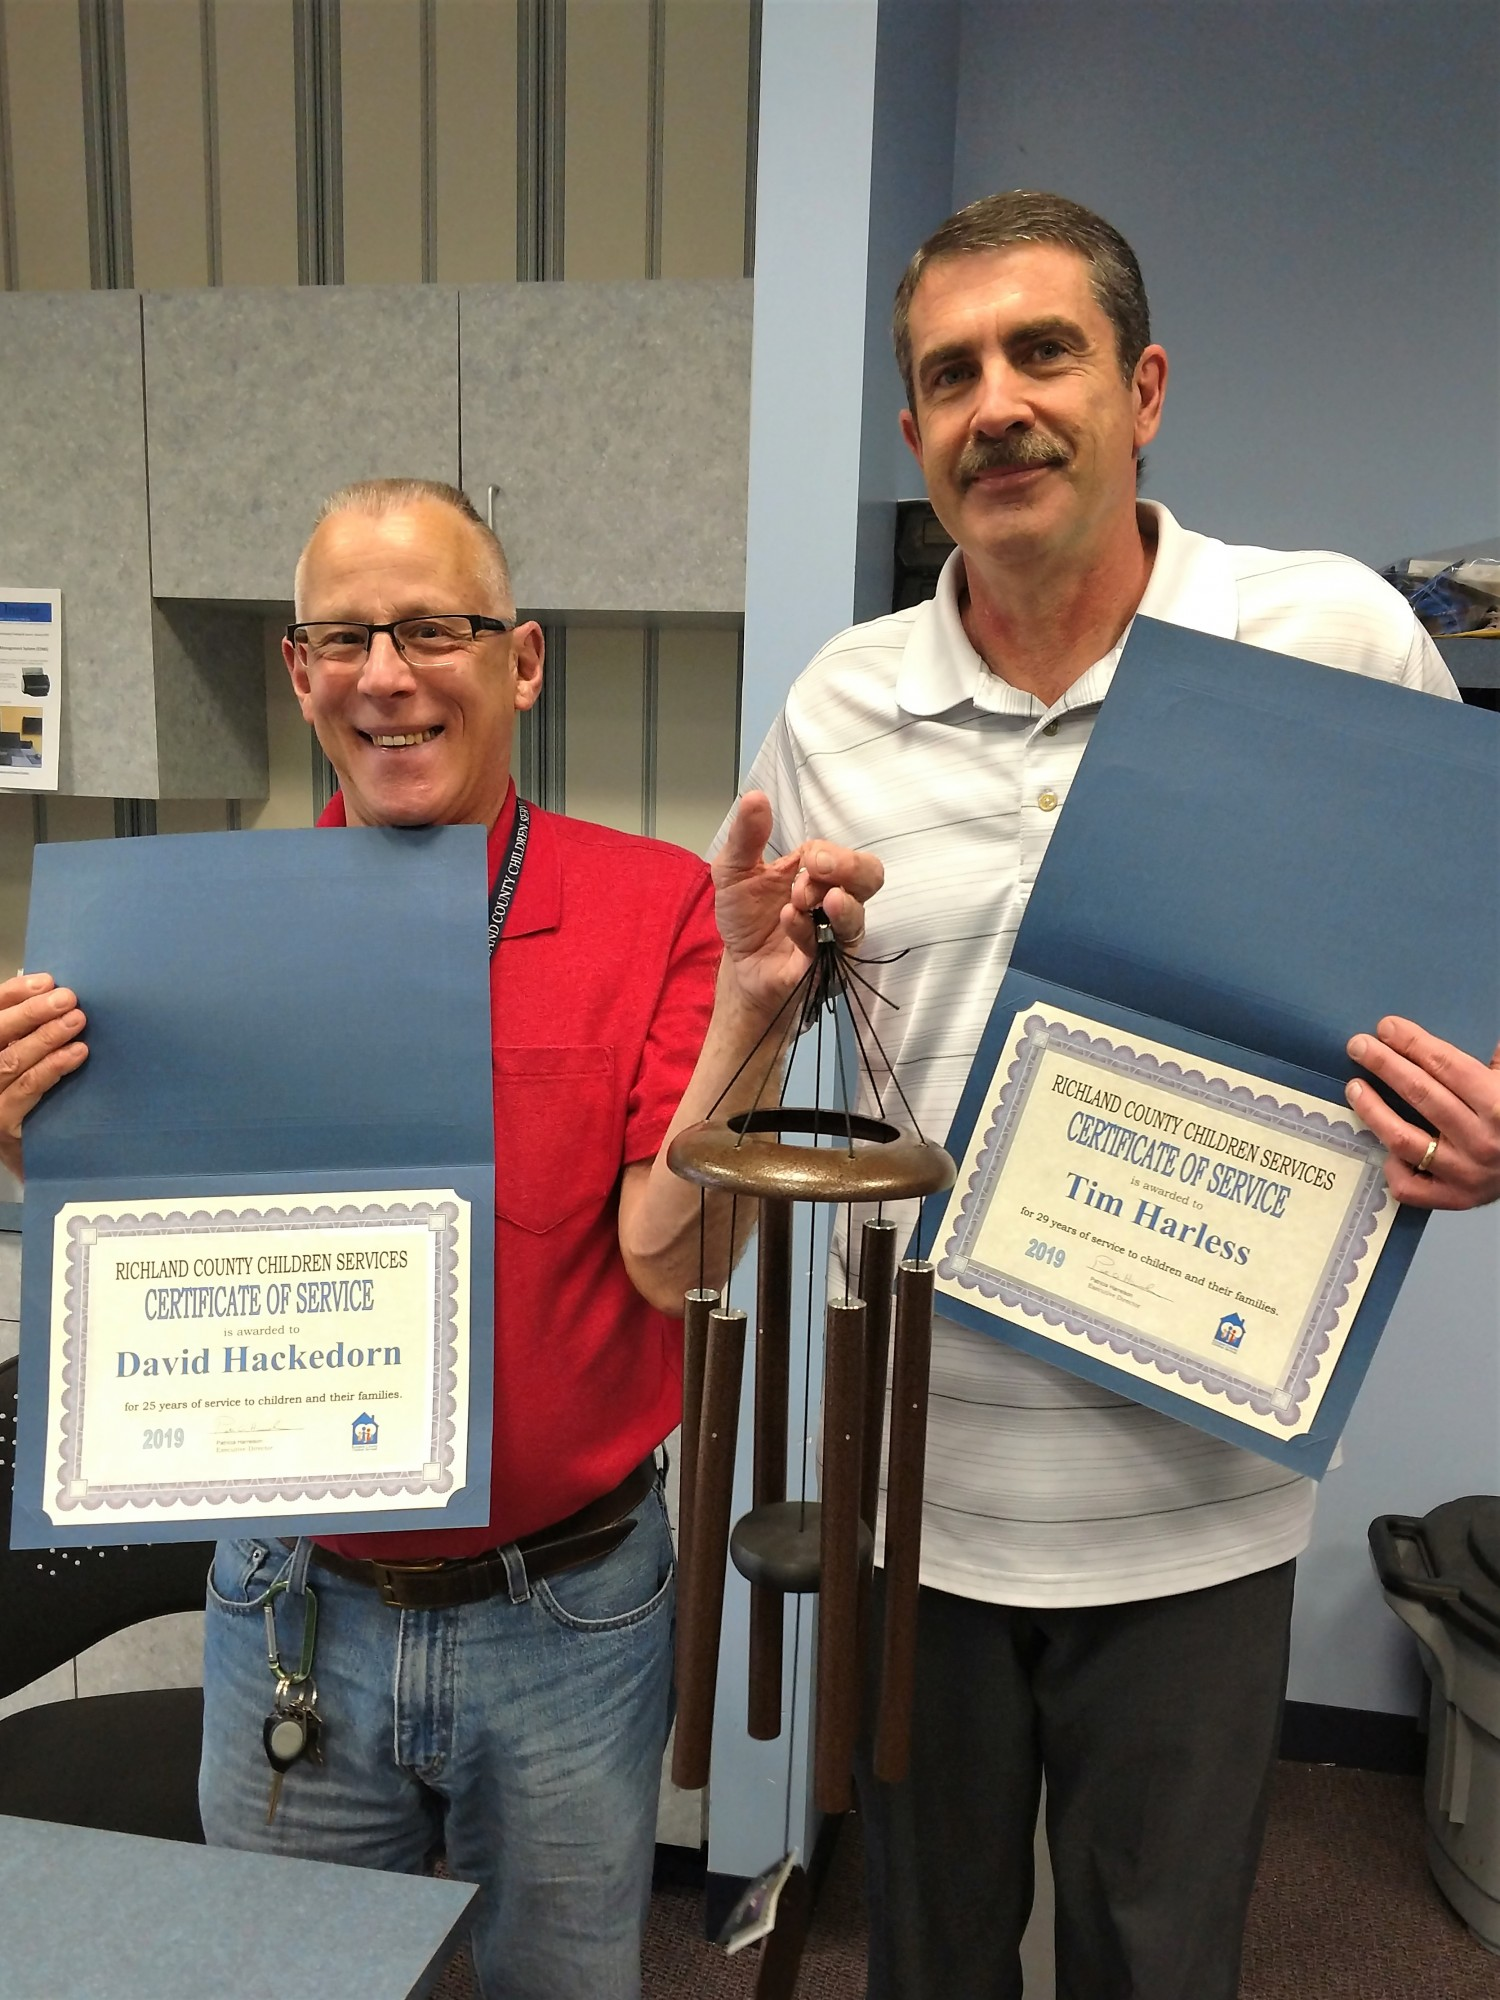 Hackedorn and Harless honored for a combined total of more than 50 years of service to RCCS